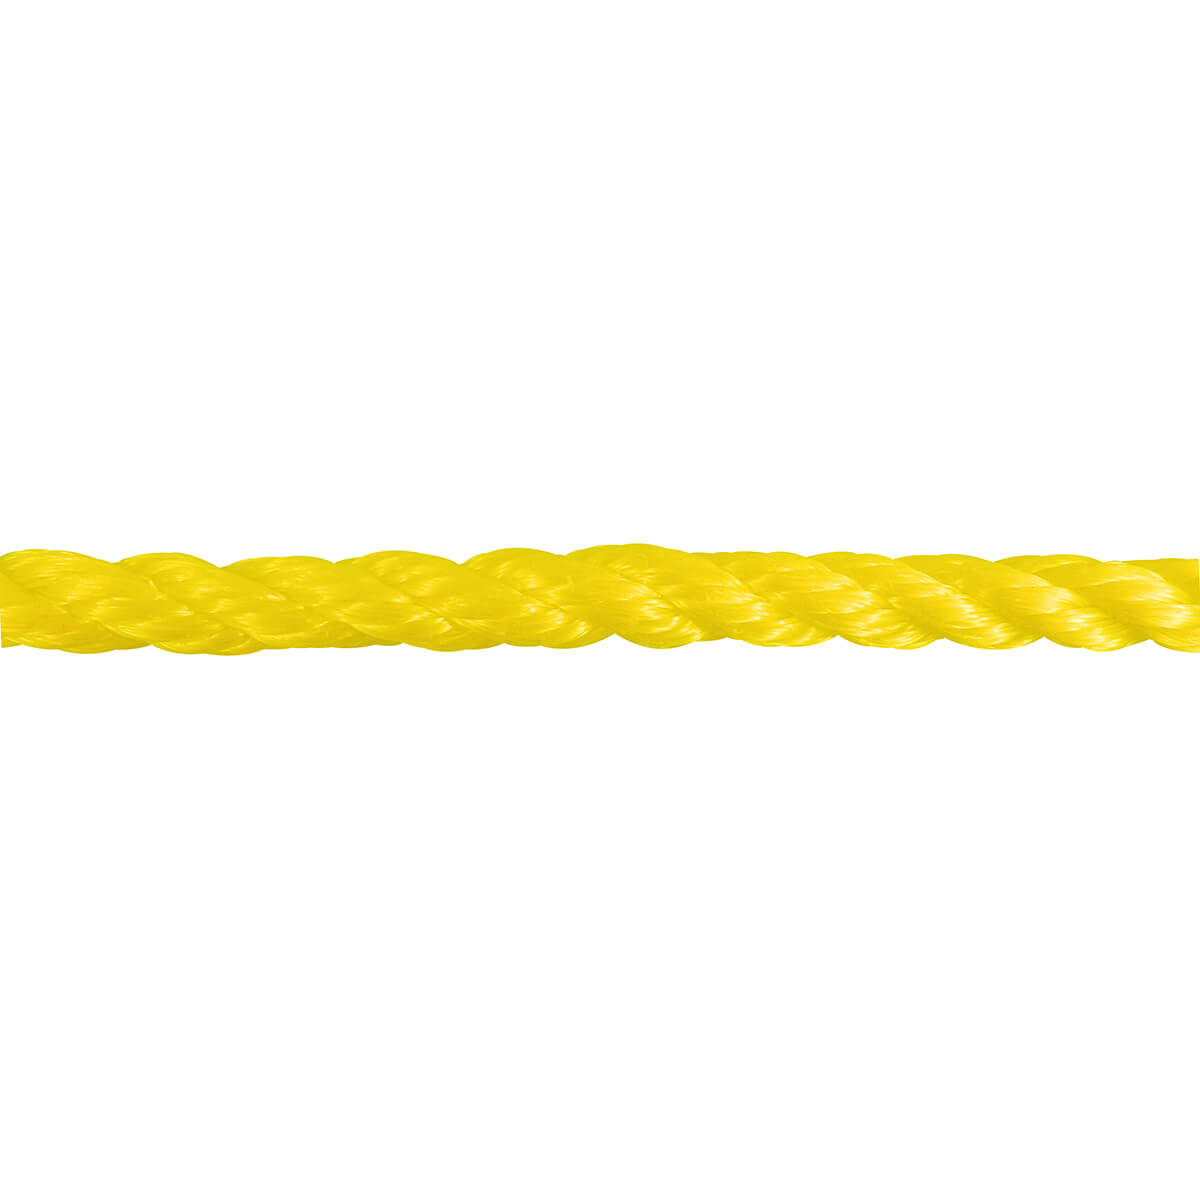 "Polypropylene Twisted Rope - Yellow - 3/8"" (price per foot)"